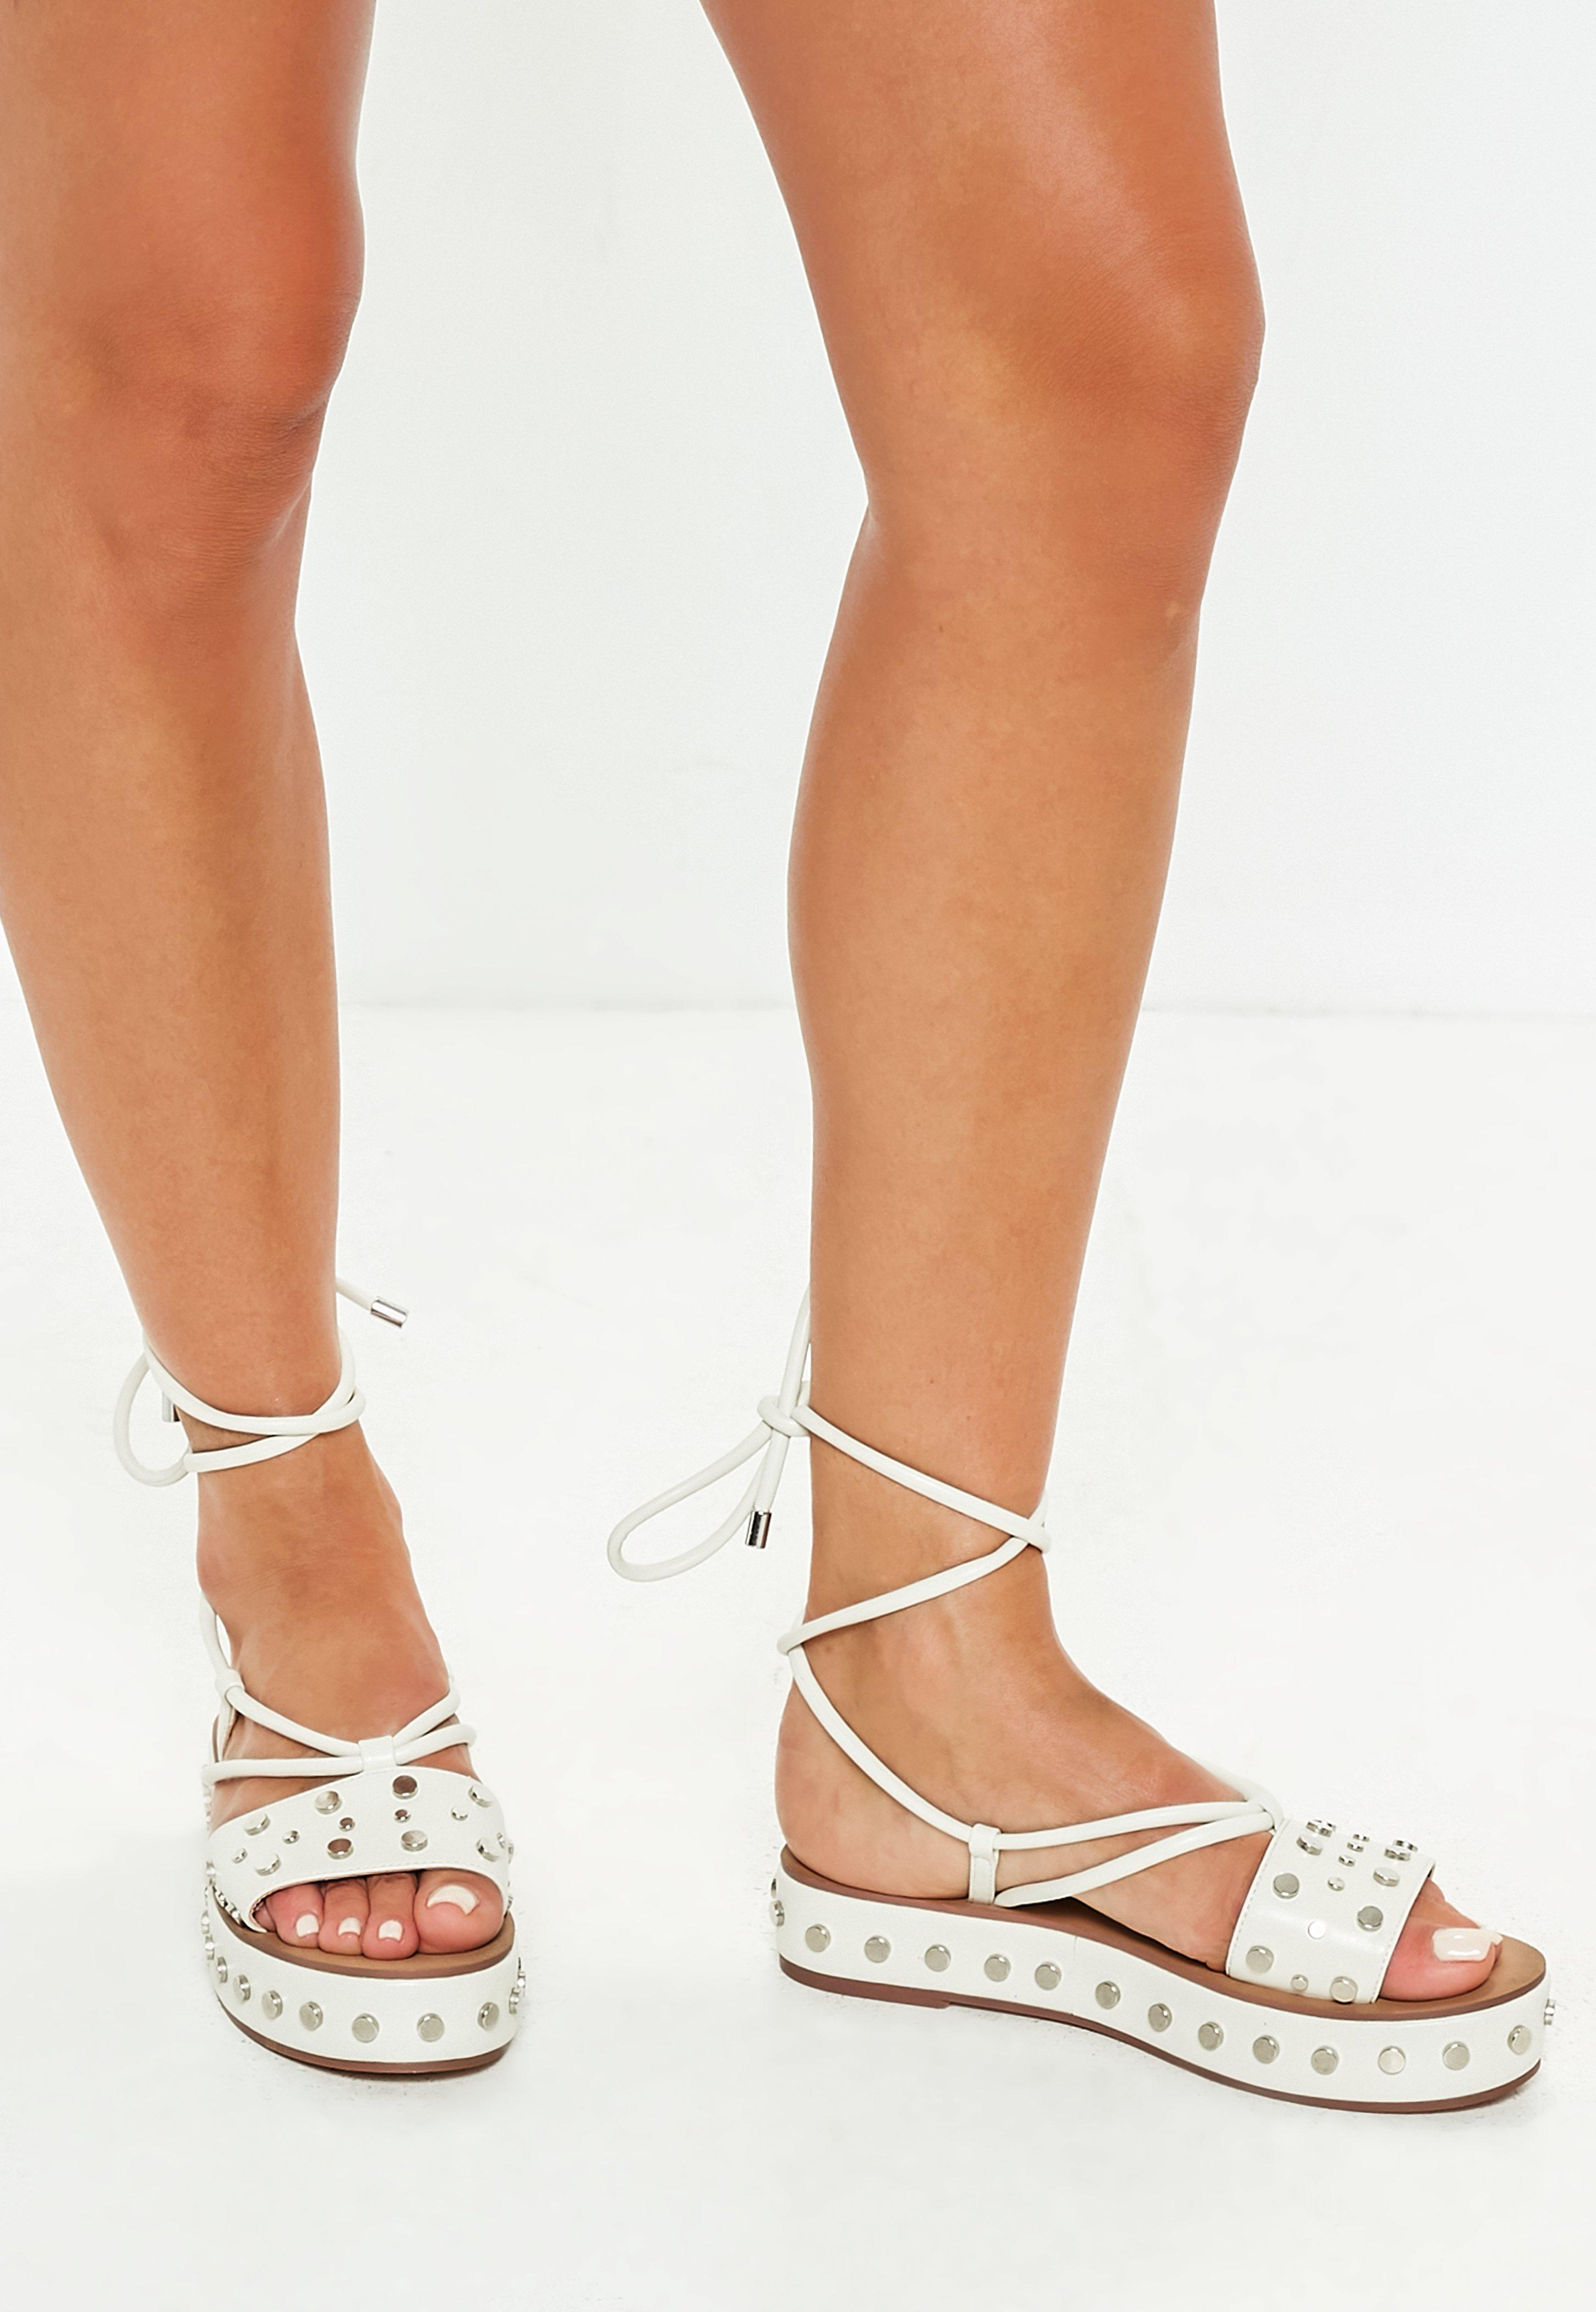 453a1a52743 Lyst - Missguided White Flatform Studded Ankle Tie Sandals in White